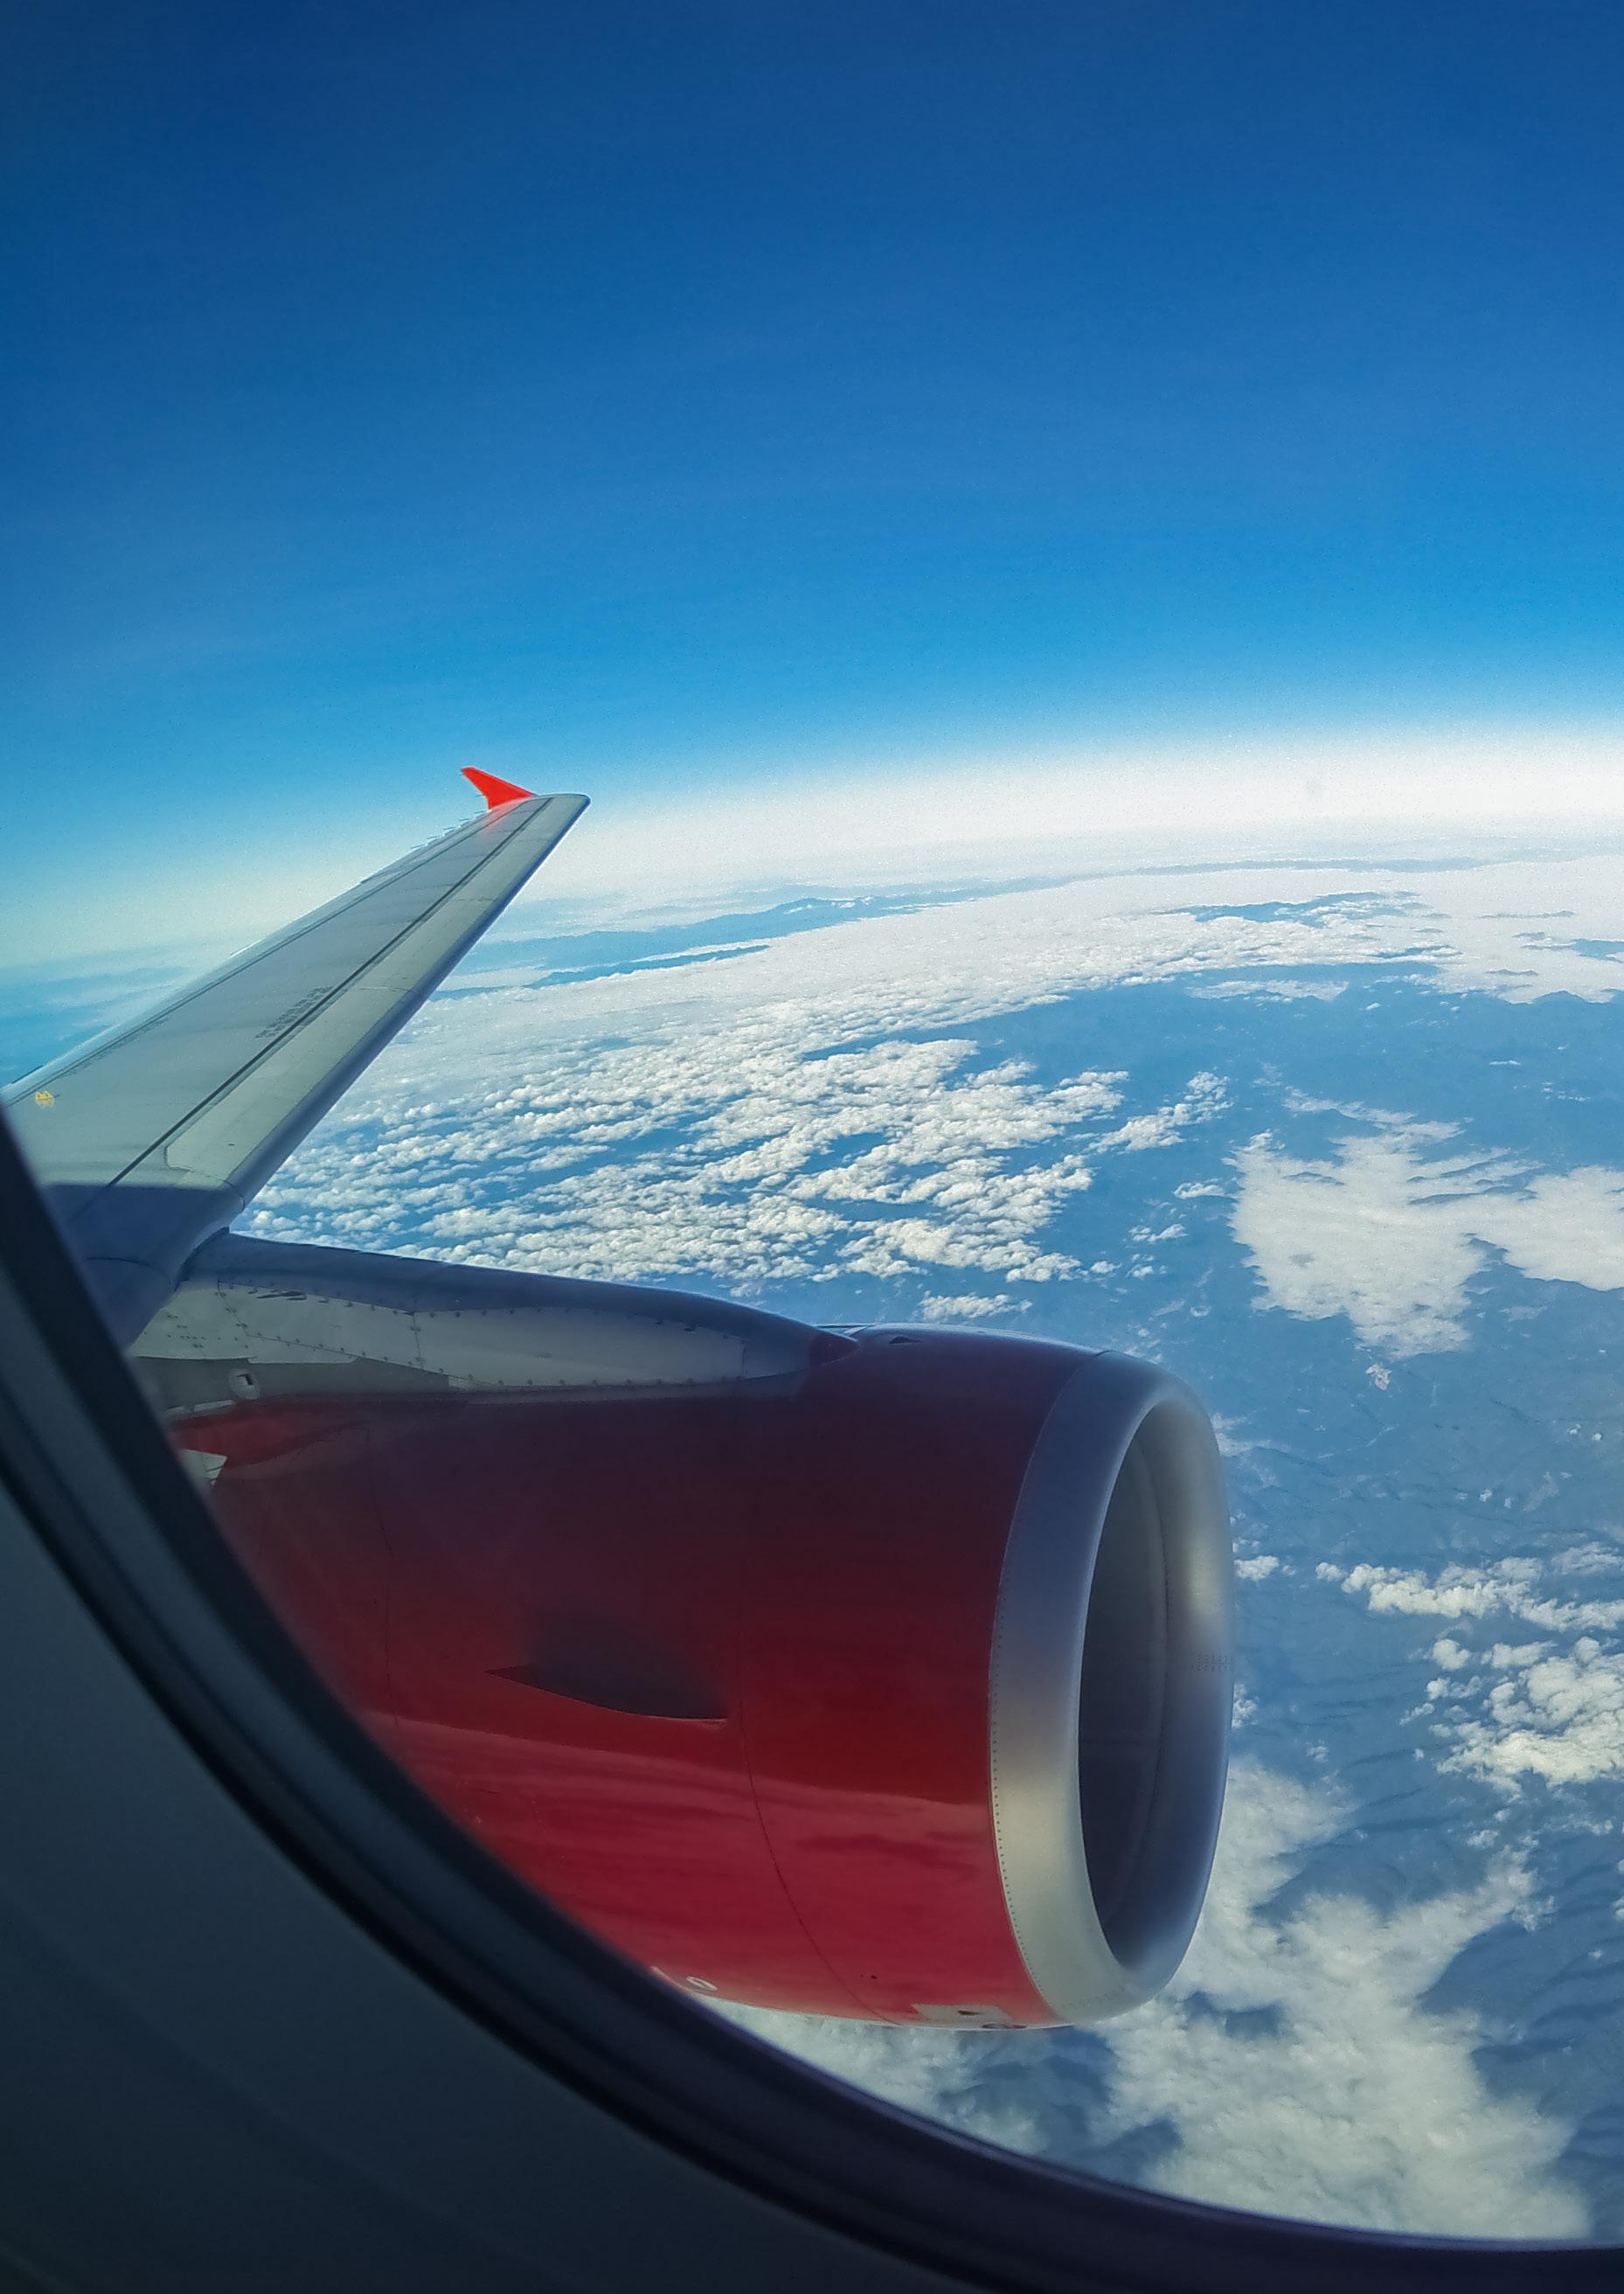 Page 26 of A SHIFT ON THE HORIZON PAX International Asia Correspondent Jeremy Clark discusses the new dynamic that may emerge between airlines and suppliers in the aftermath of COVID-19